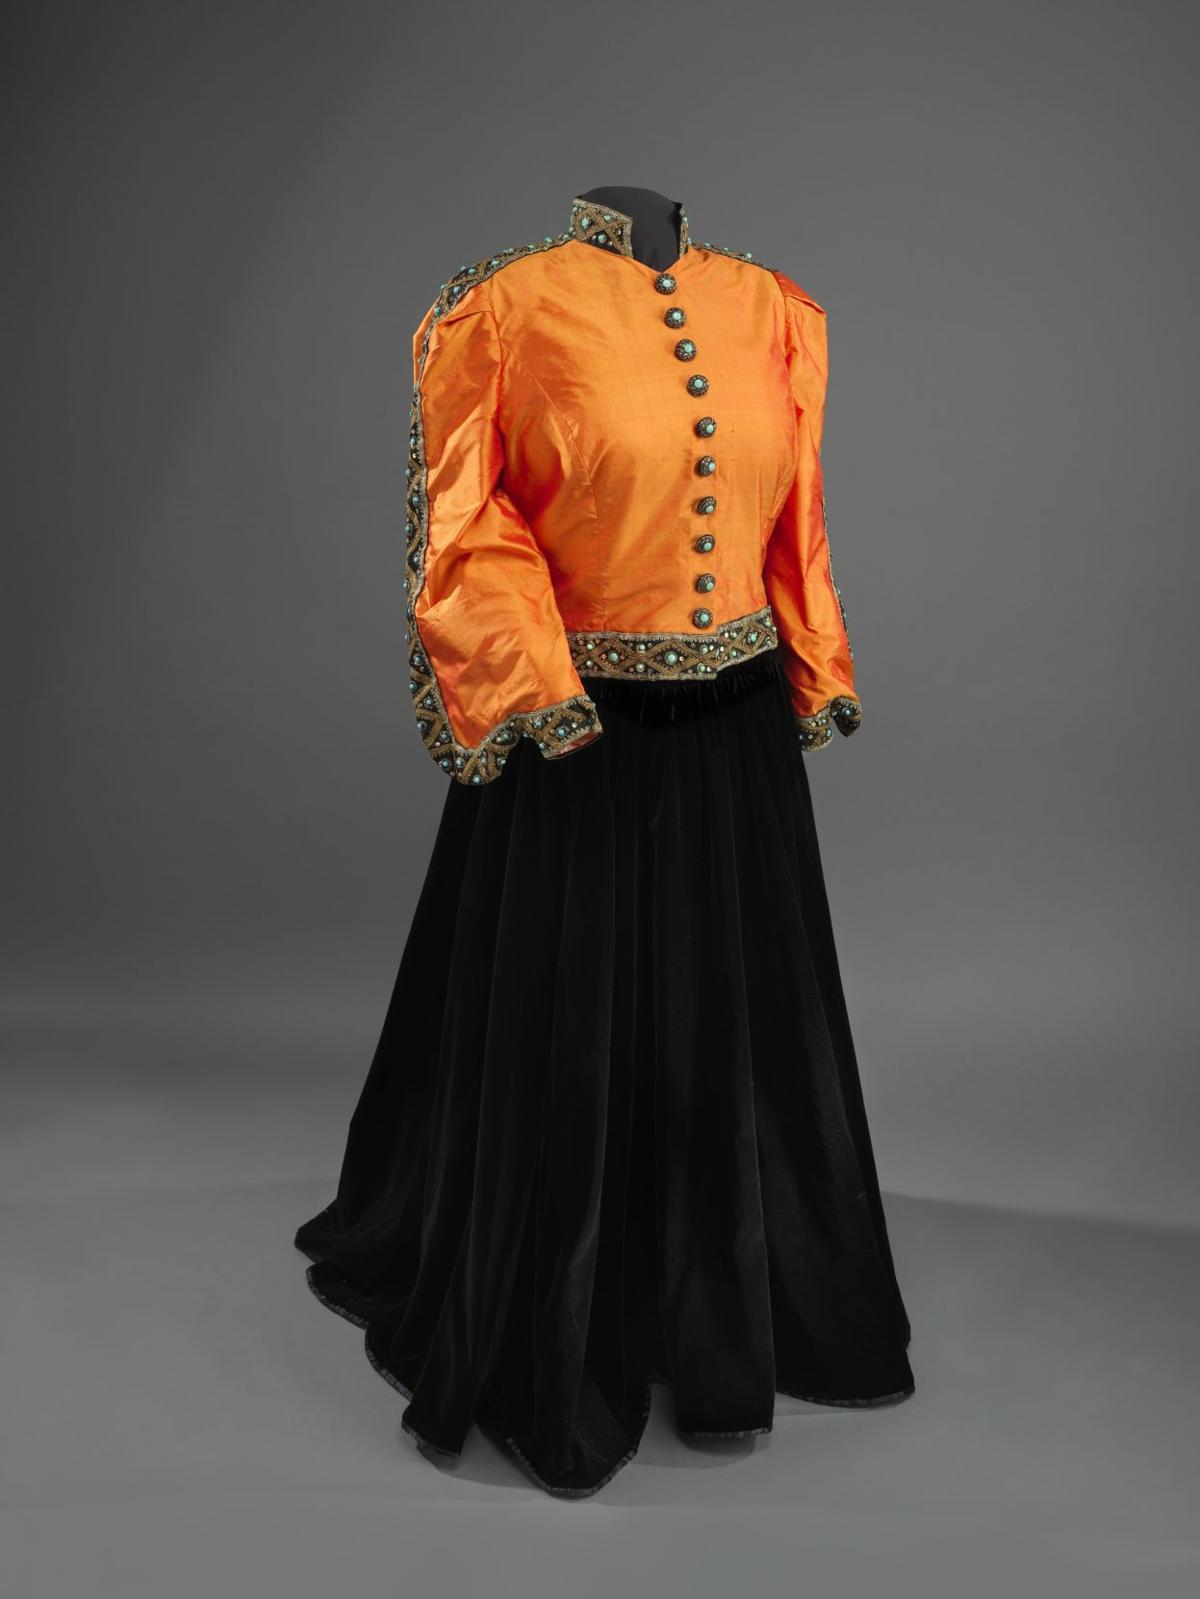 Marian Anderson jacket and skirt